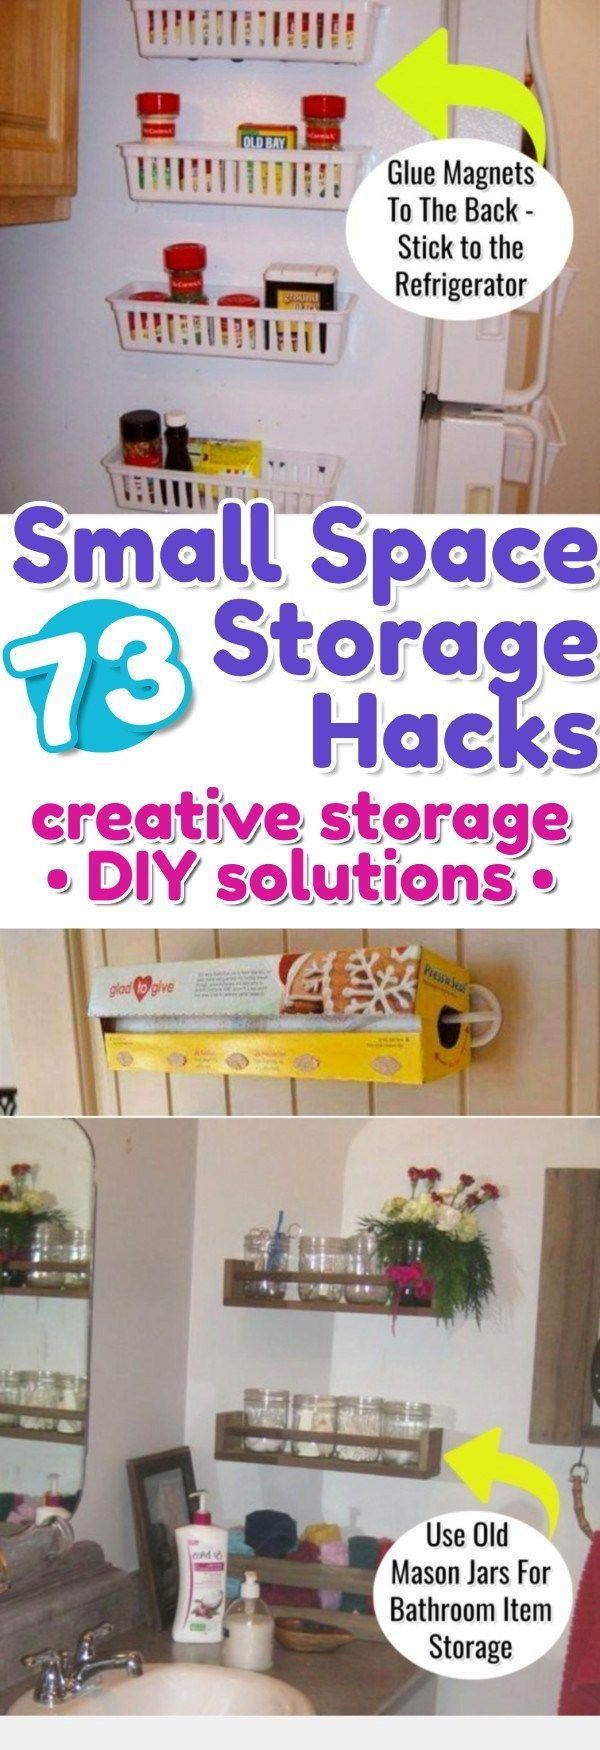 Storage hacks for small spaces - DIY storage solutions for small bedrooms, small kitchens, small apartments, small bathrooms, the garage and more